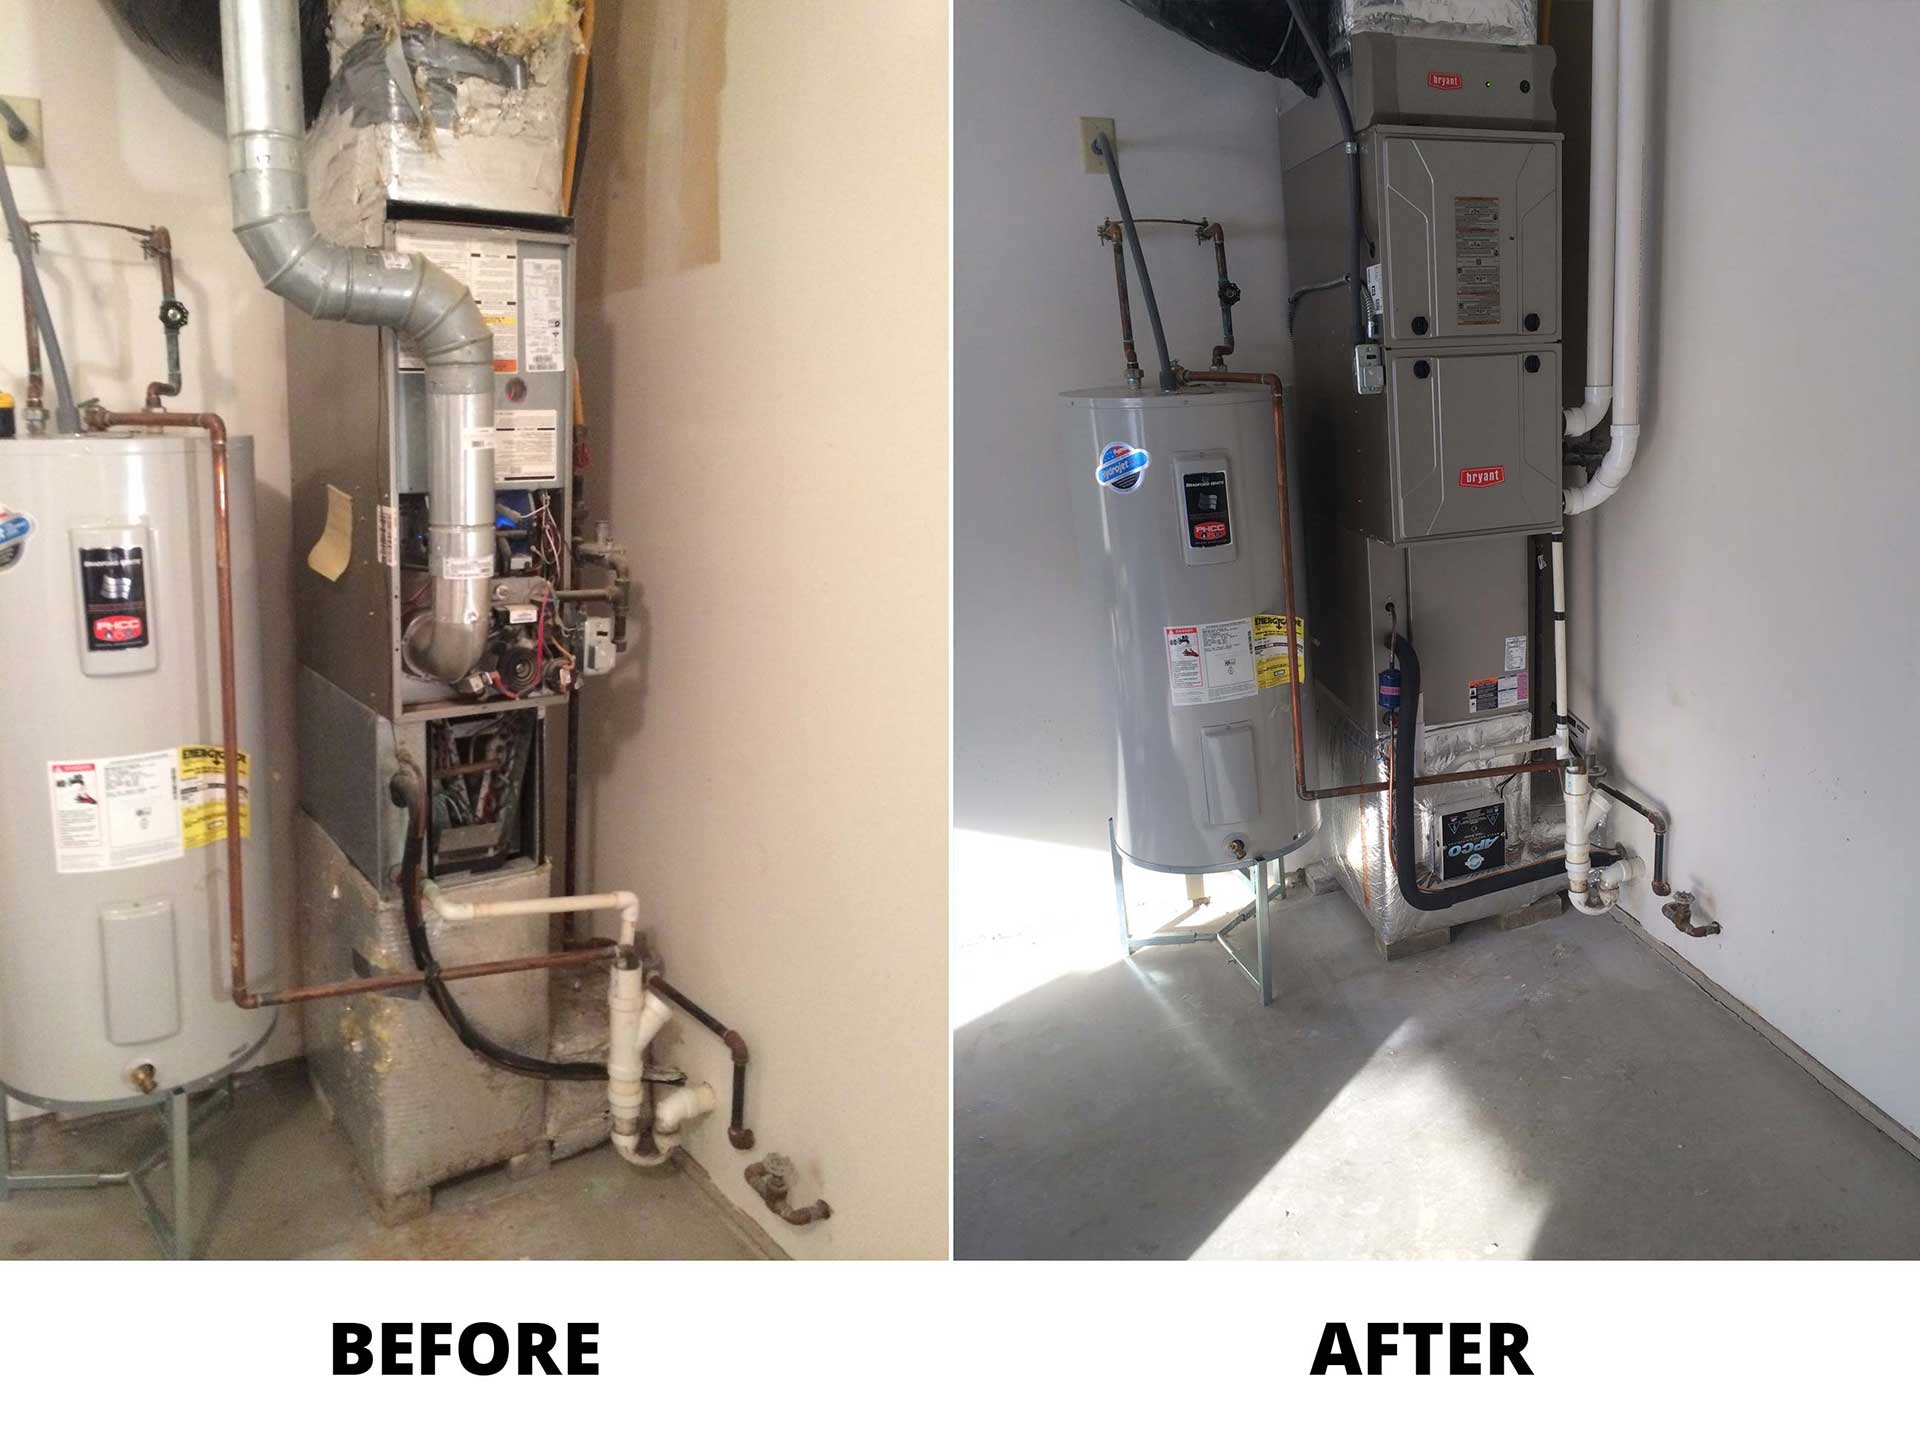 Evolution Gas Furnace with Whole House Purification System